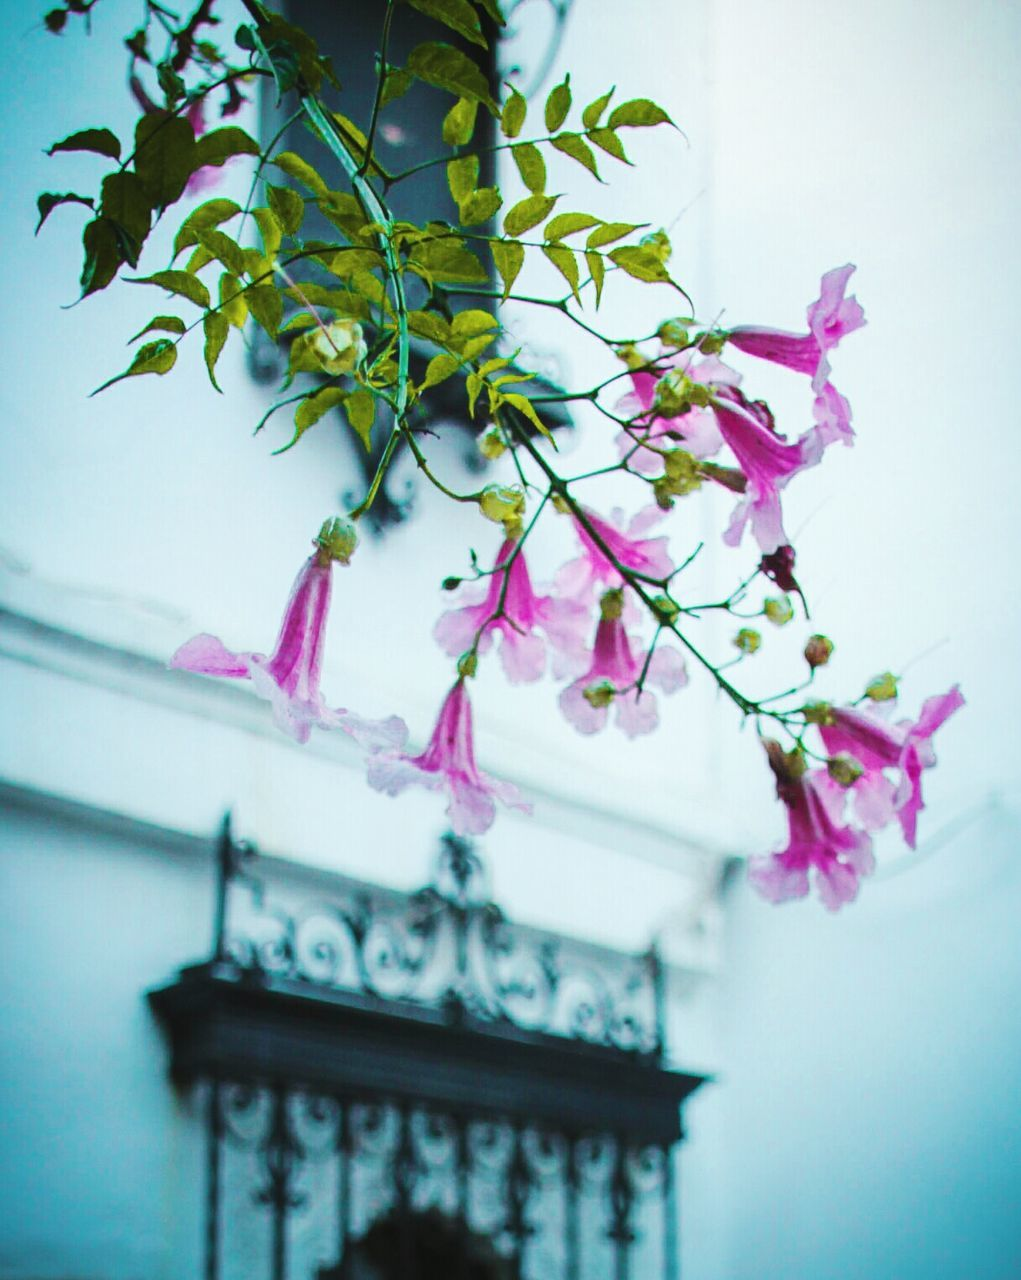 architecture, built structure, low angle view, building exterior, no people, growth, day, pink color, fragility, outdoors, close-up, nature, tree, freshness, sky